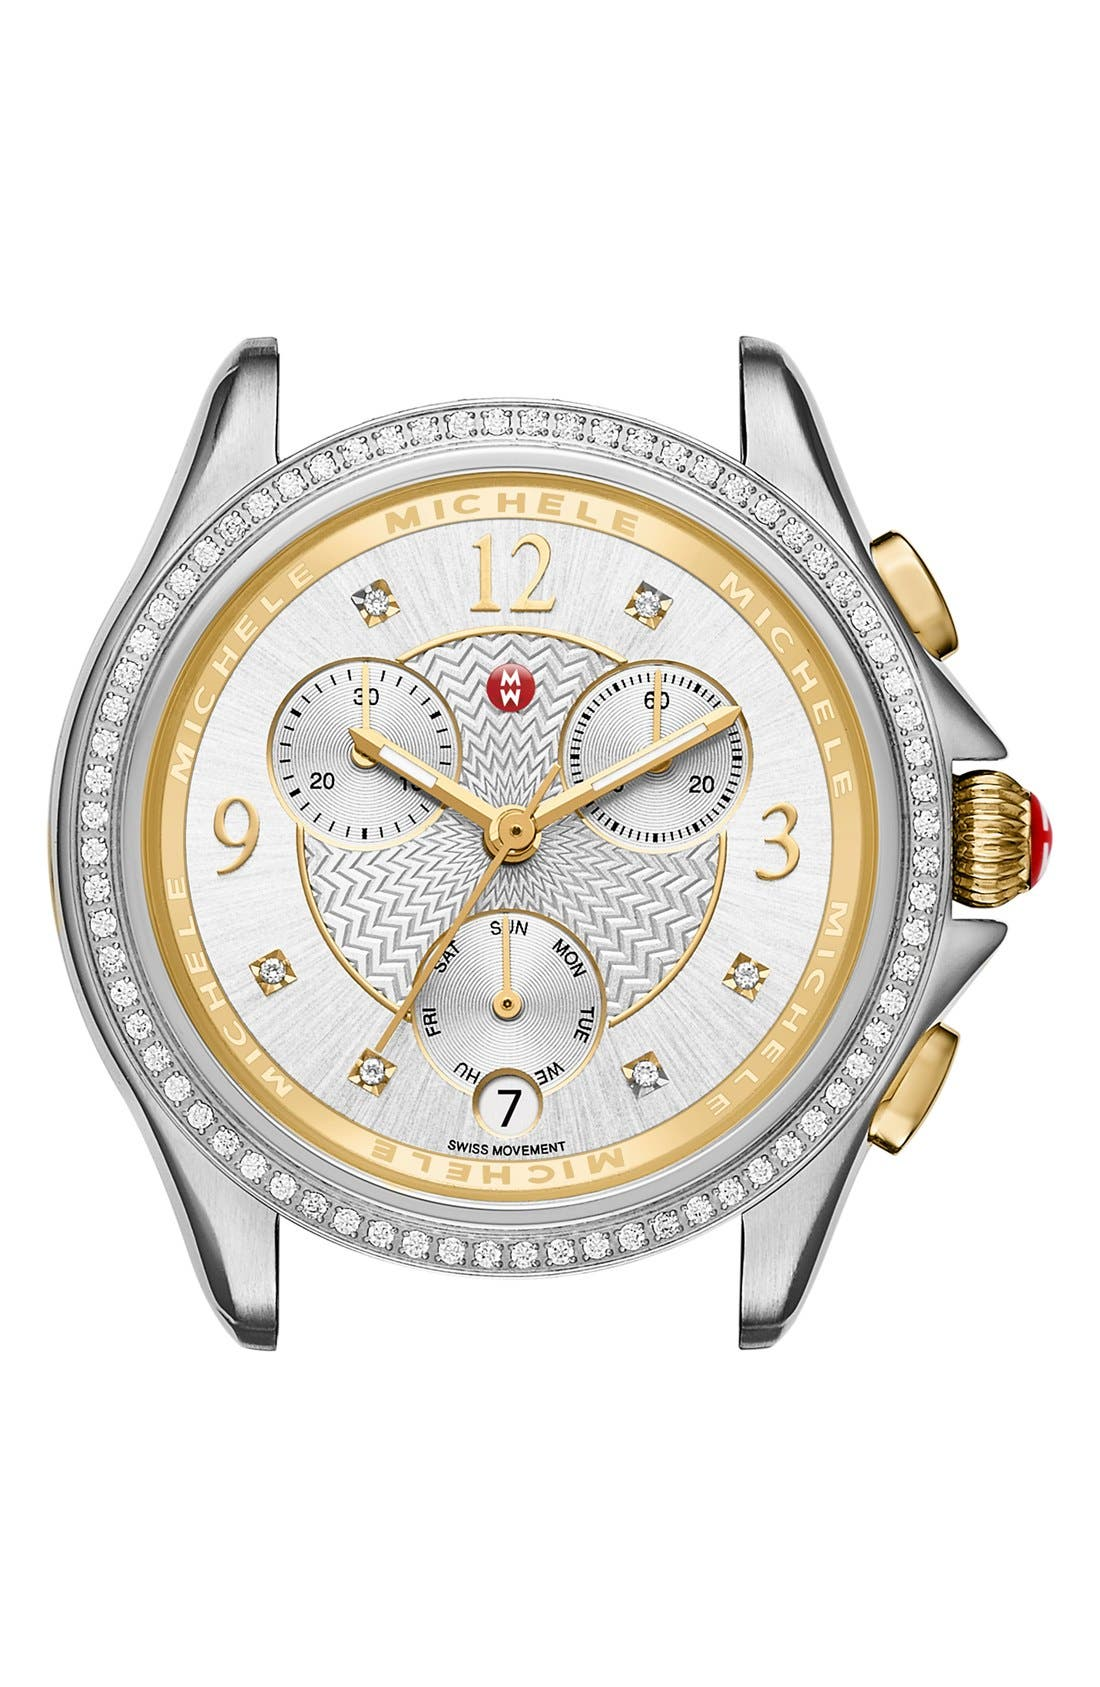 Main Image - MICHELE Belmore Chrono Diamond Diamond Dial Watch Case, 37mm